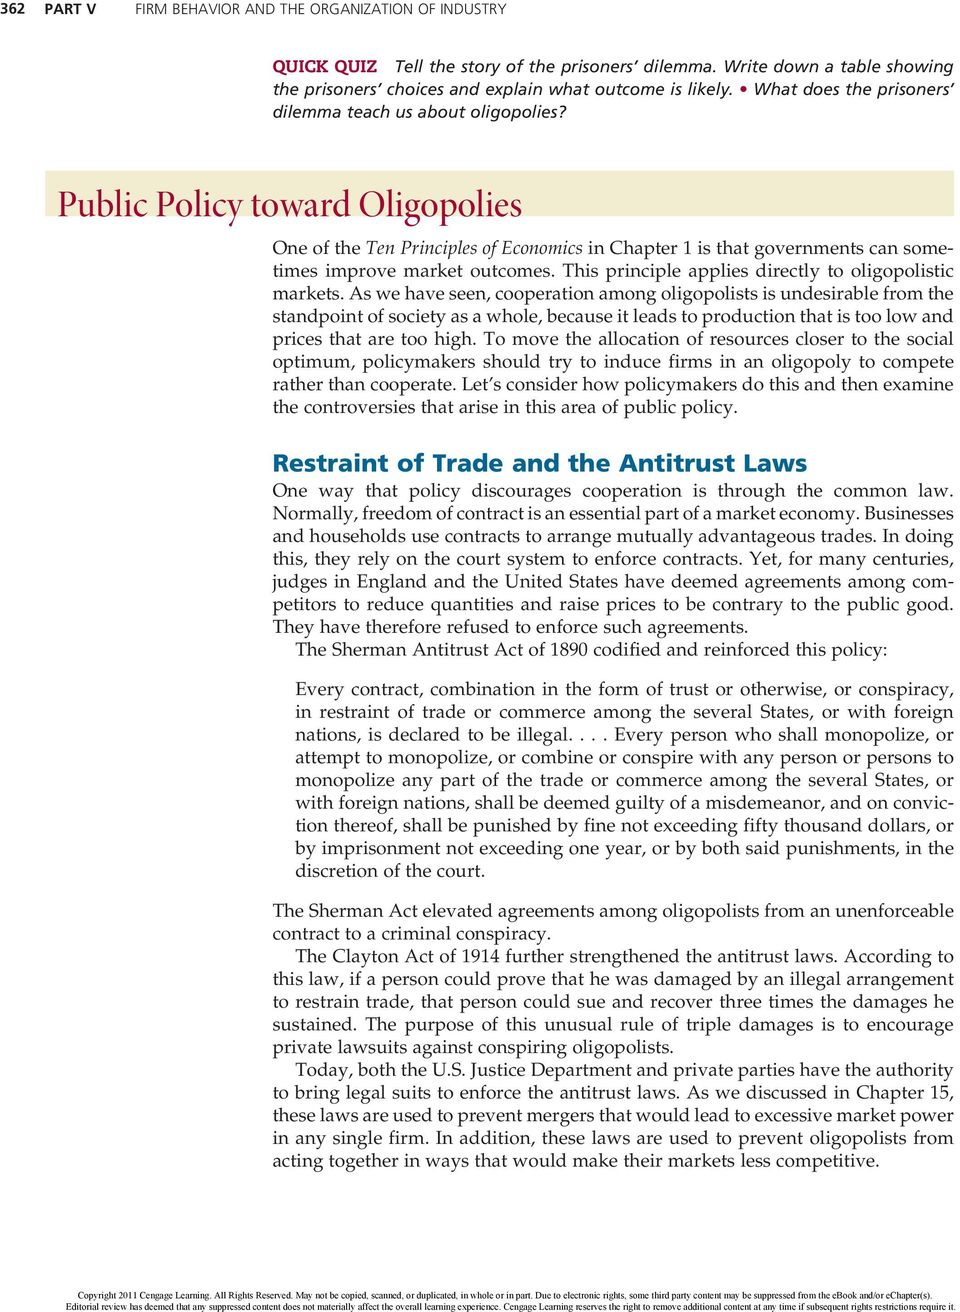 Public Policy toward Oligopolies One of the Ten Principles of Economics in Chapter 1 is that governments can sometimes improve market outcomes.